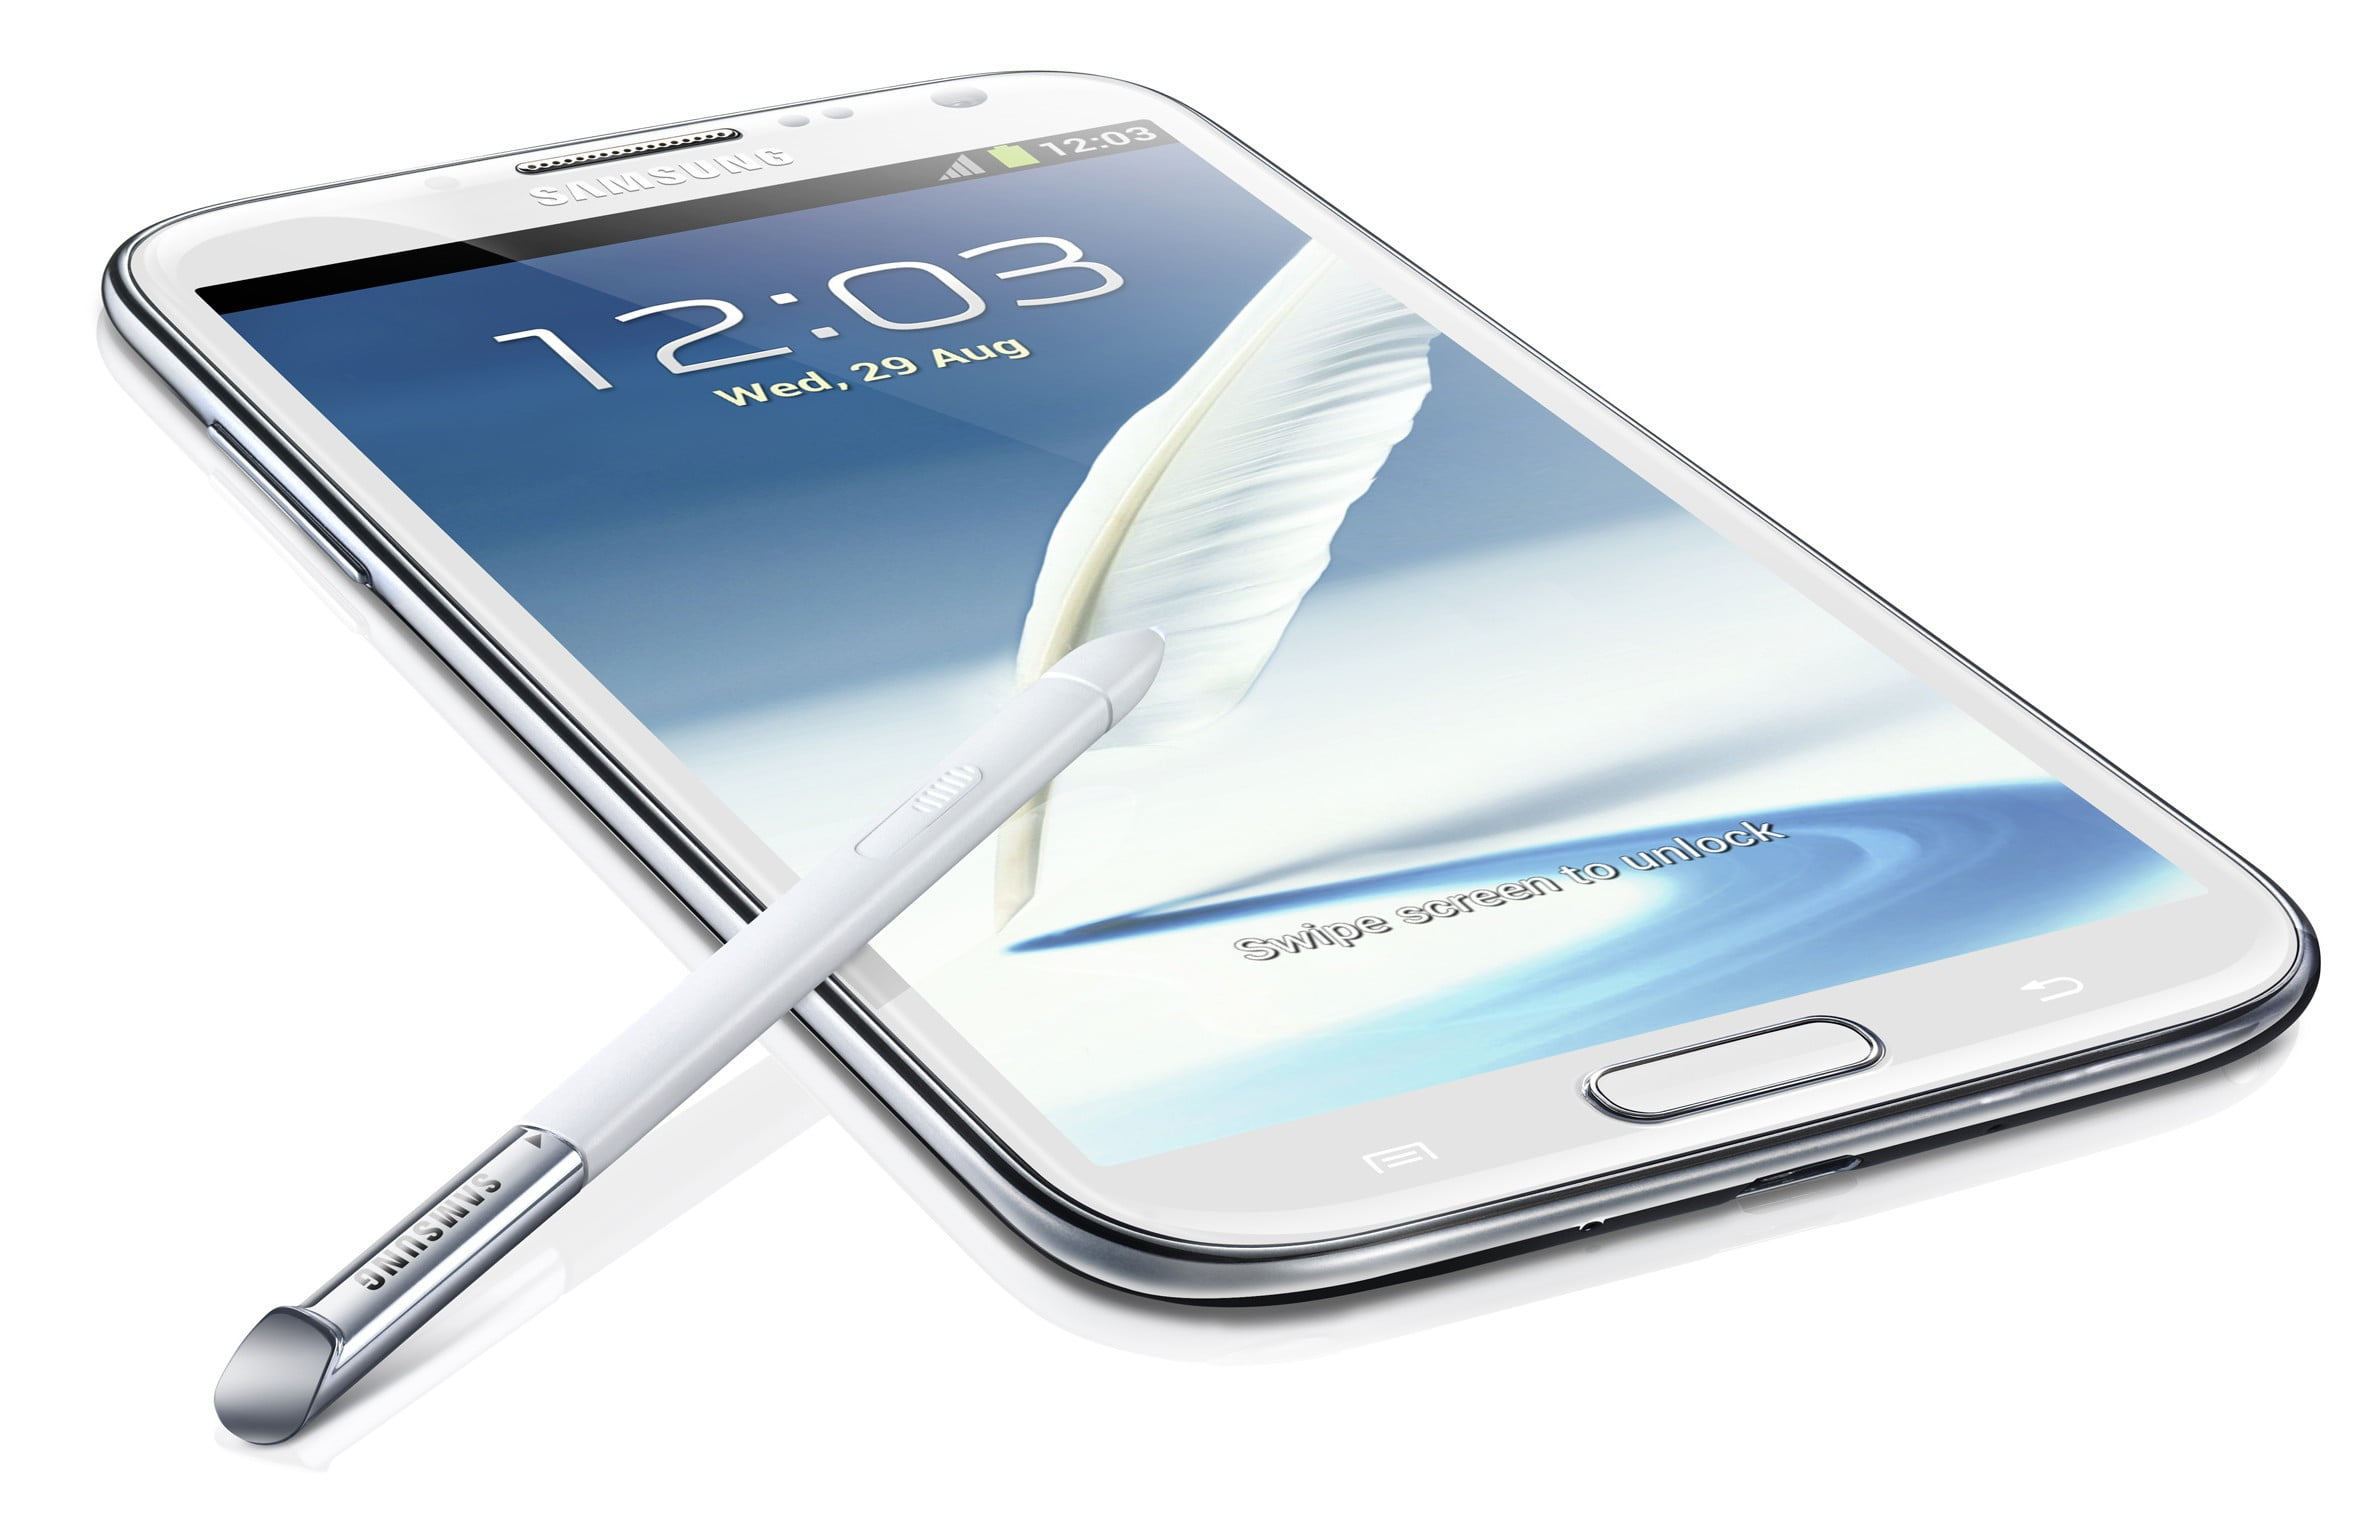 Tab Come Mobile Galaxy Note X